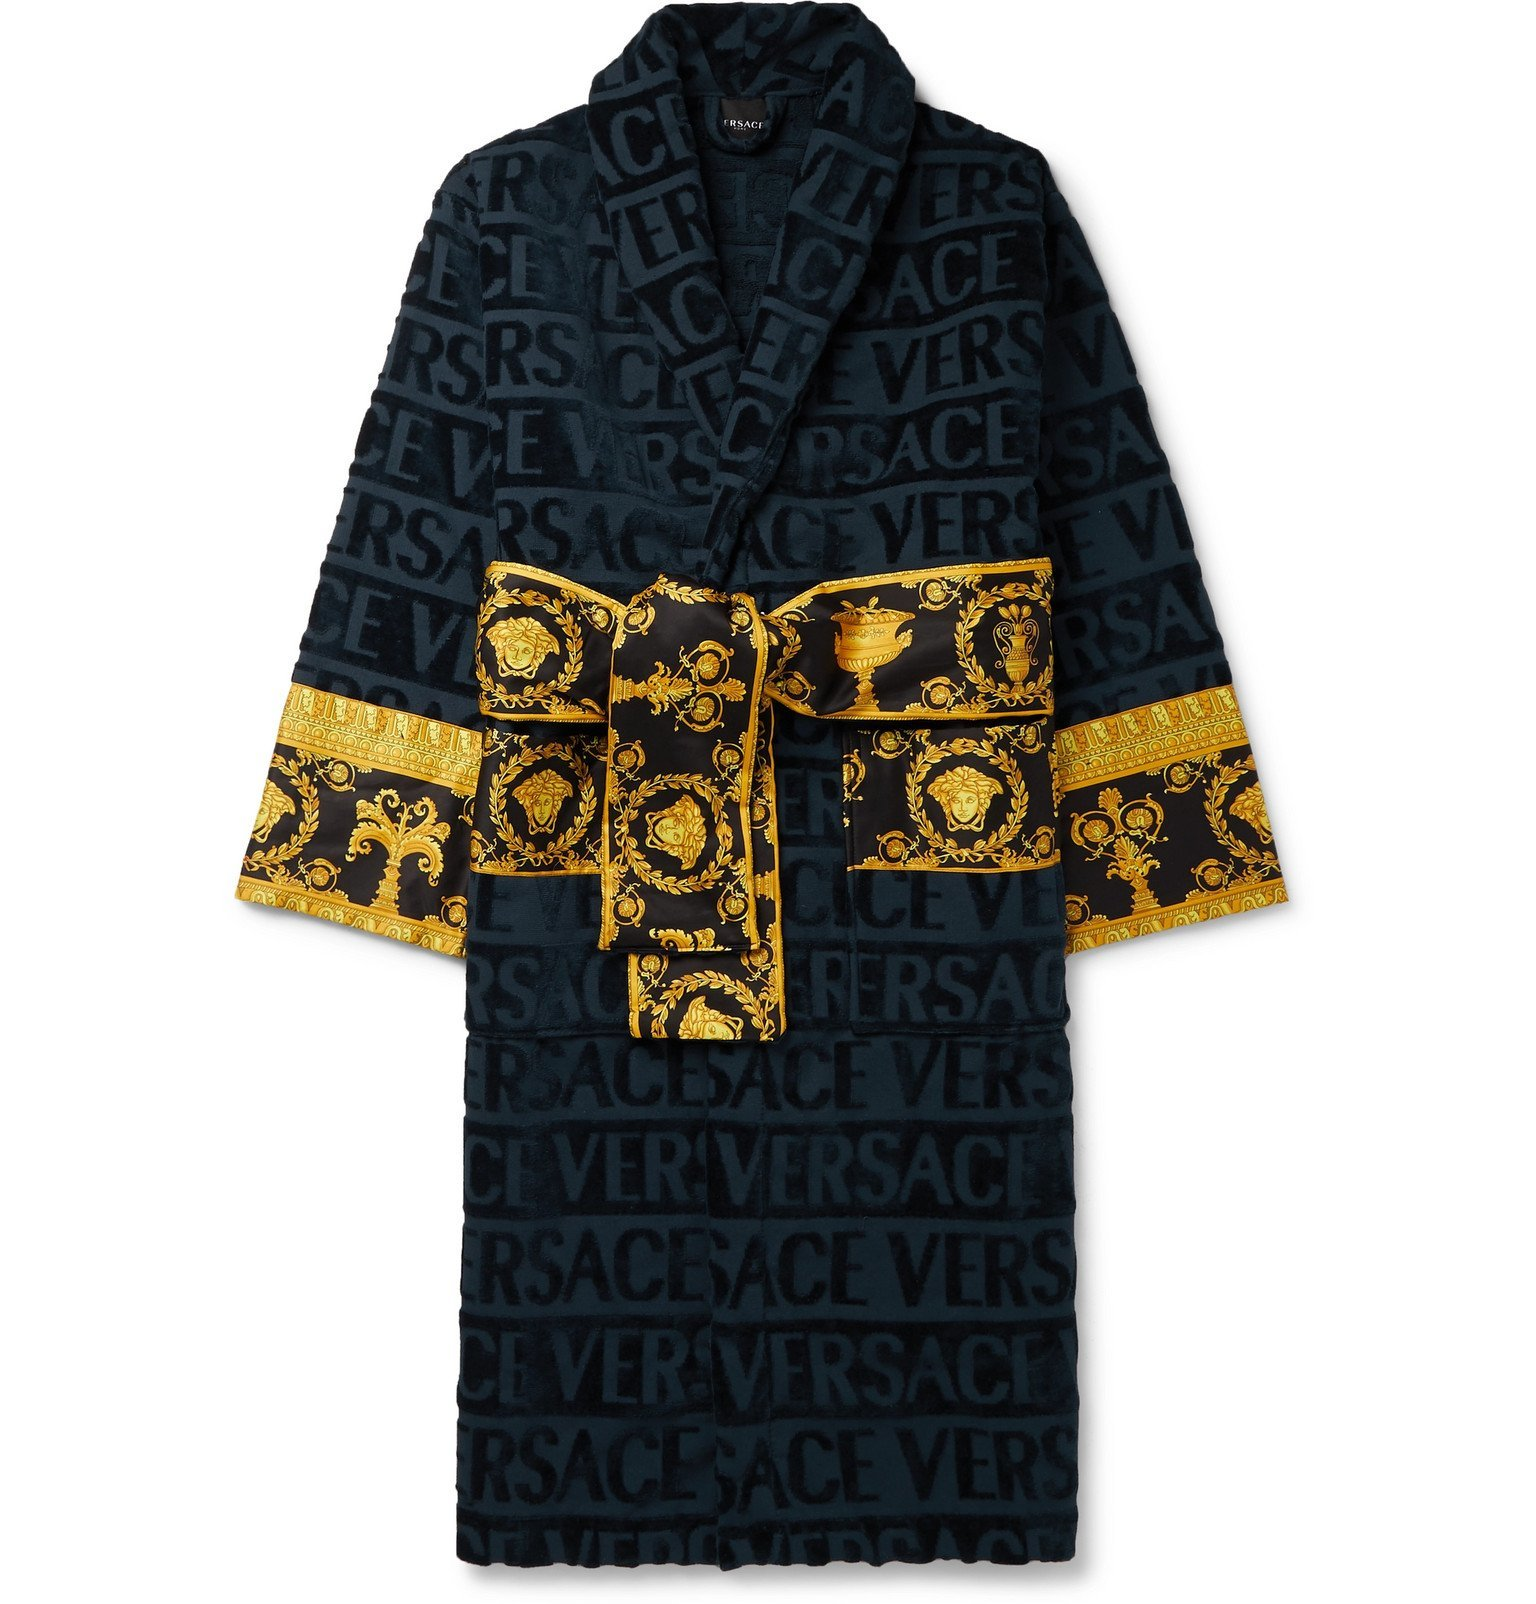 Versace - Printed Satin-Trimmed Logo-Jacquard Cotton-Terry Robe - Blue